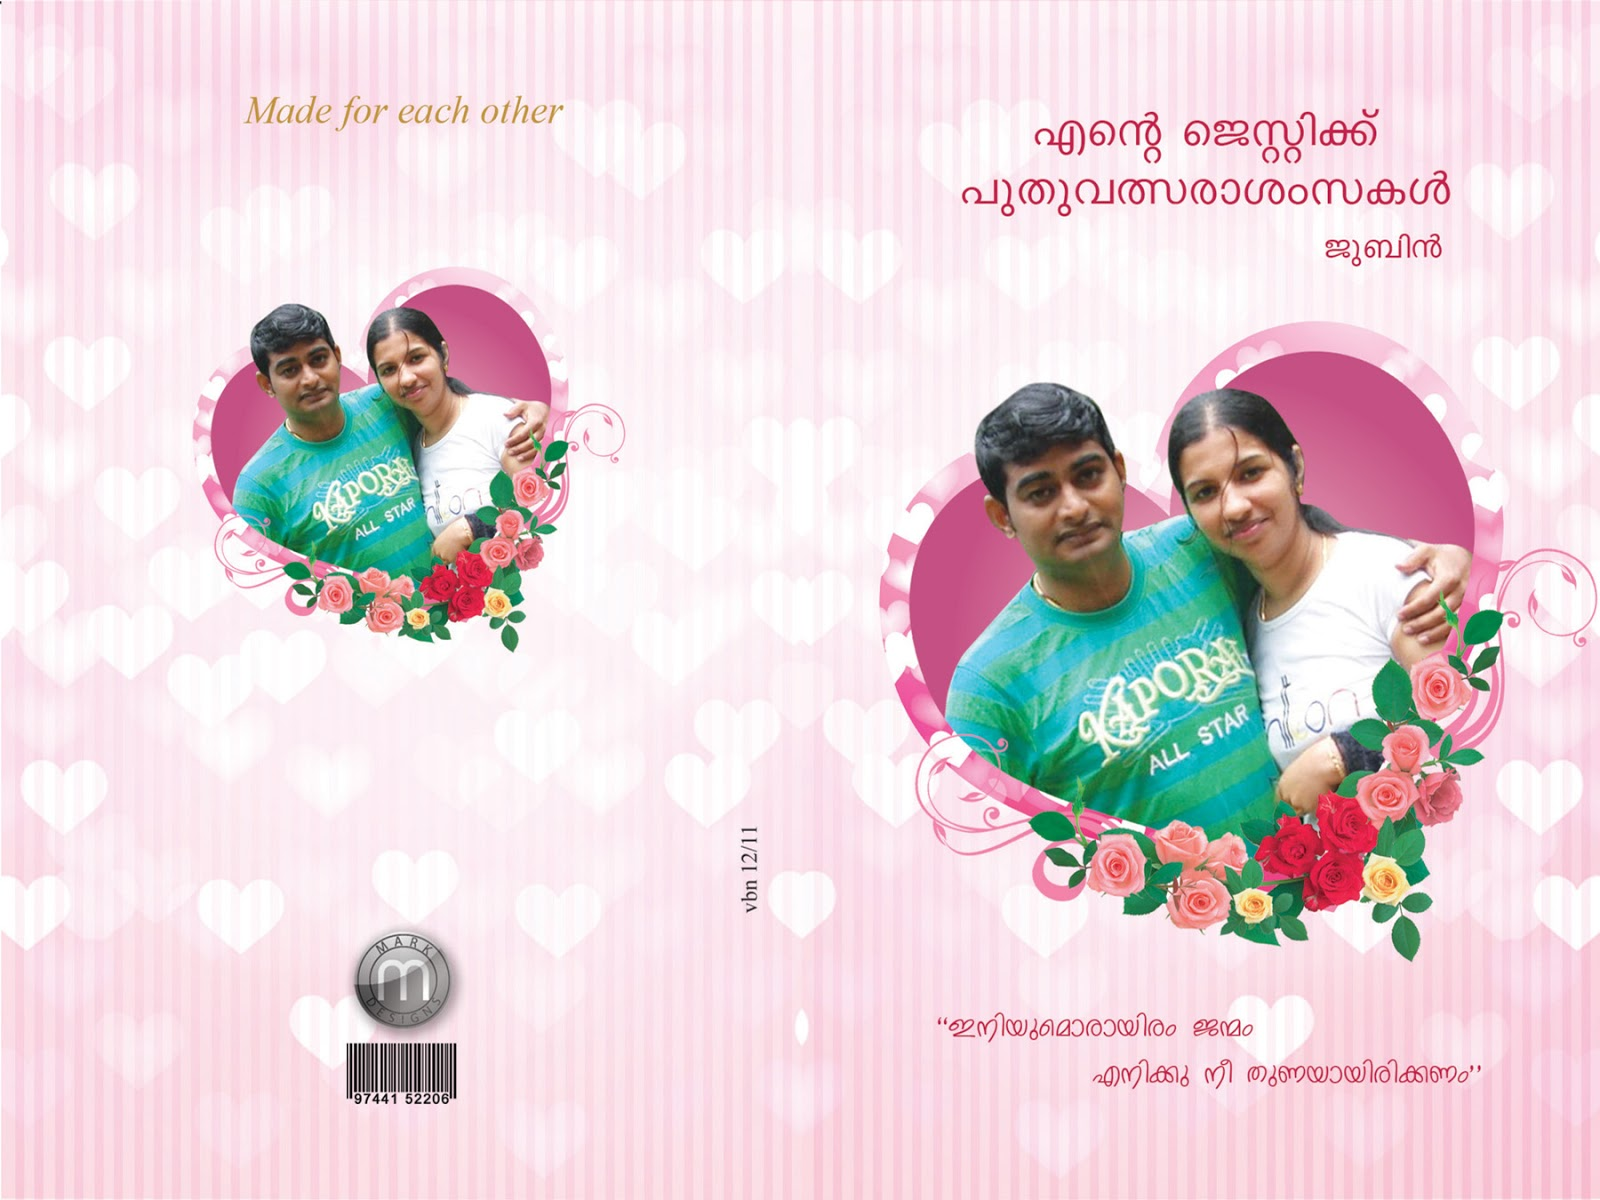 Vibinks wedding anniversary cards greeting cards wedding wedding anniversary cards greeting cards wedding anniversary cards malayalam happy wedding anniversary card m4hsunfo